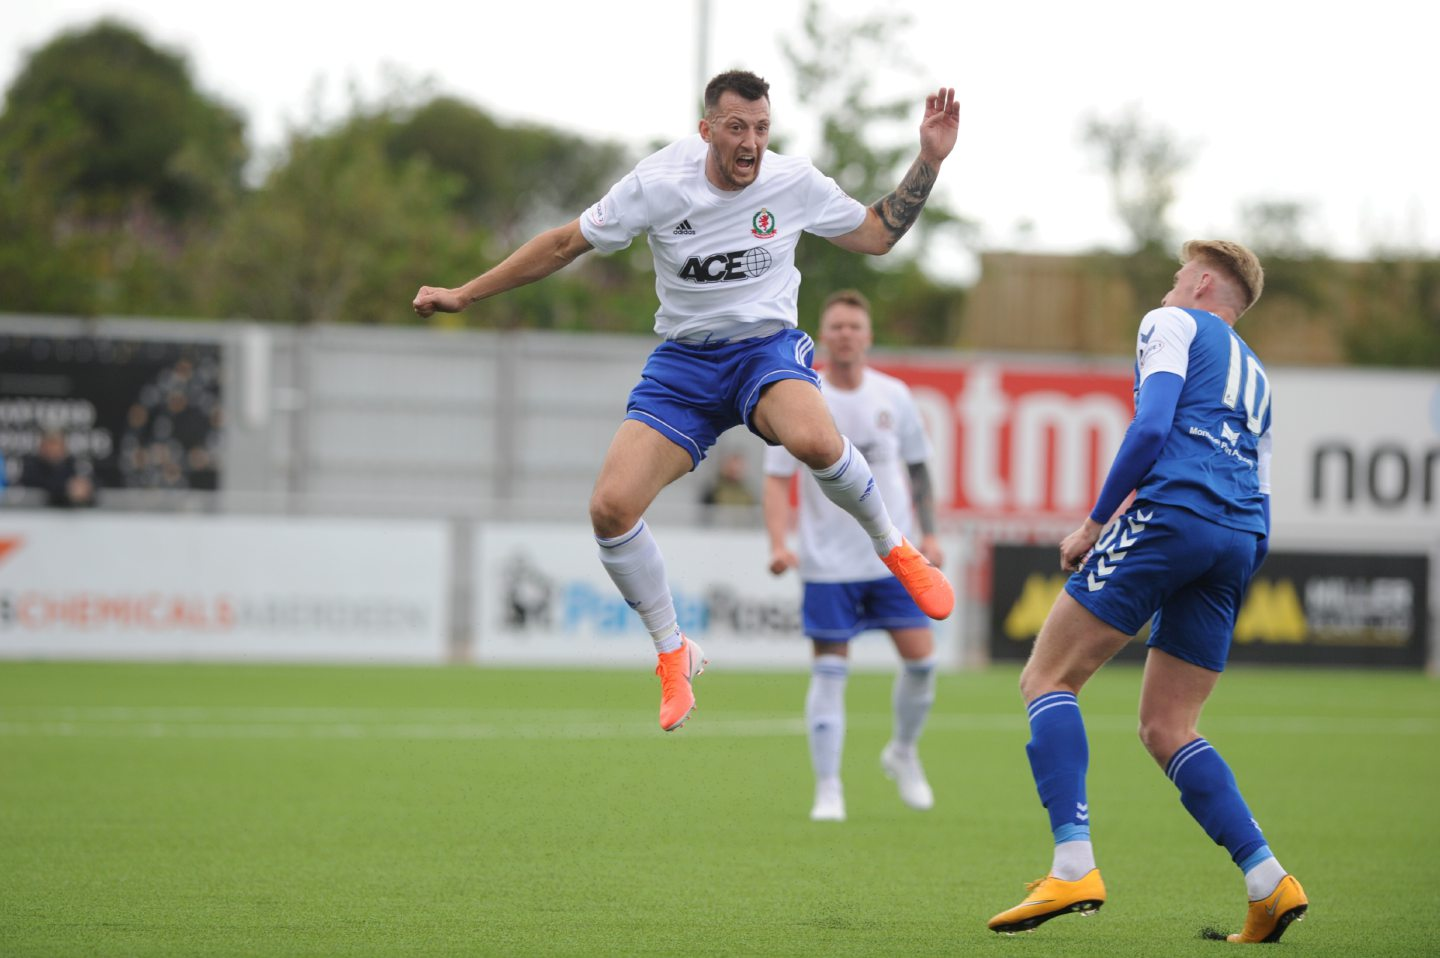 Connor Scully in action for Cove.